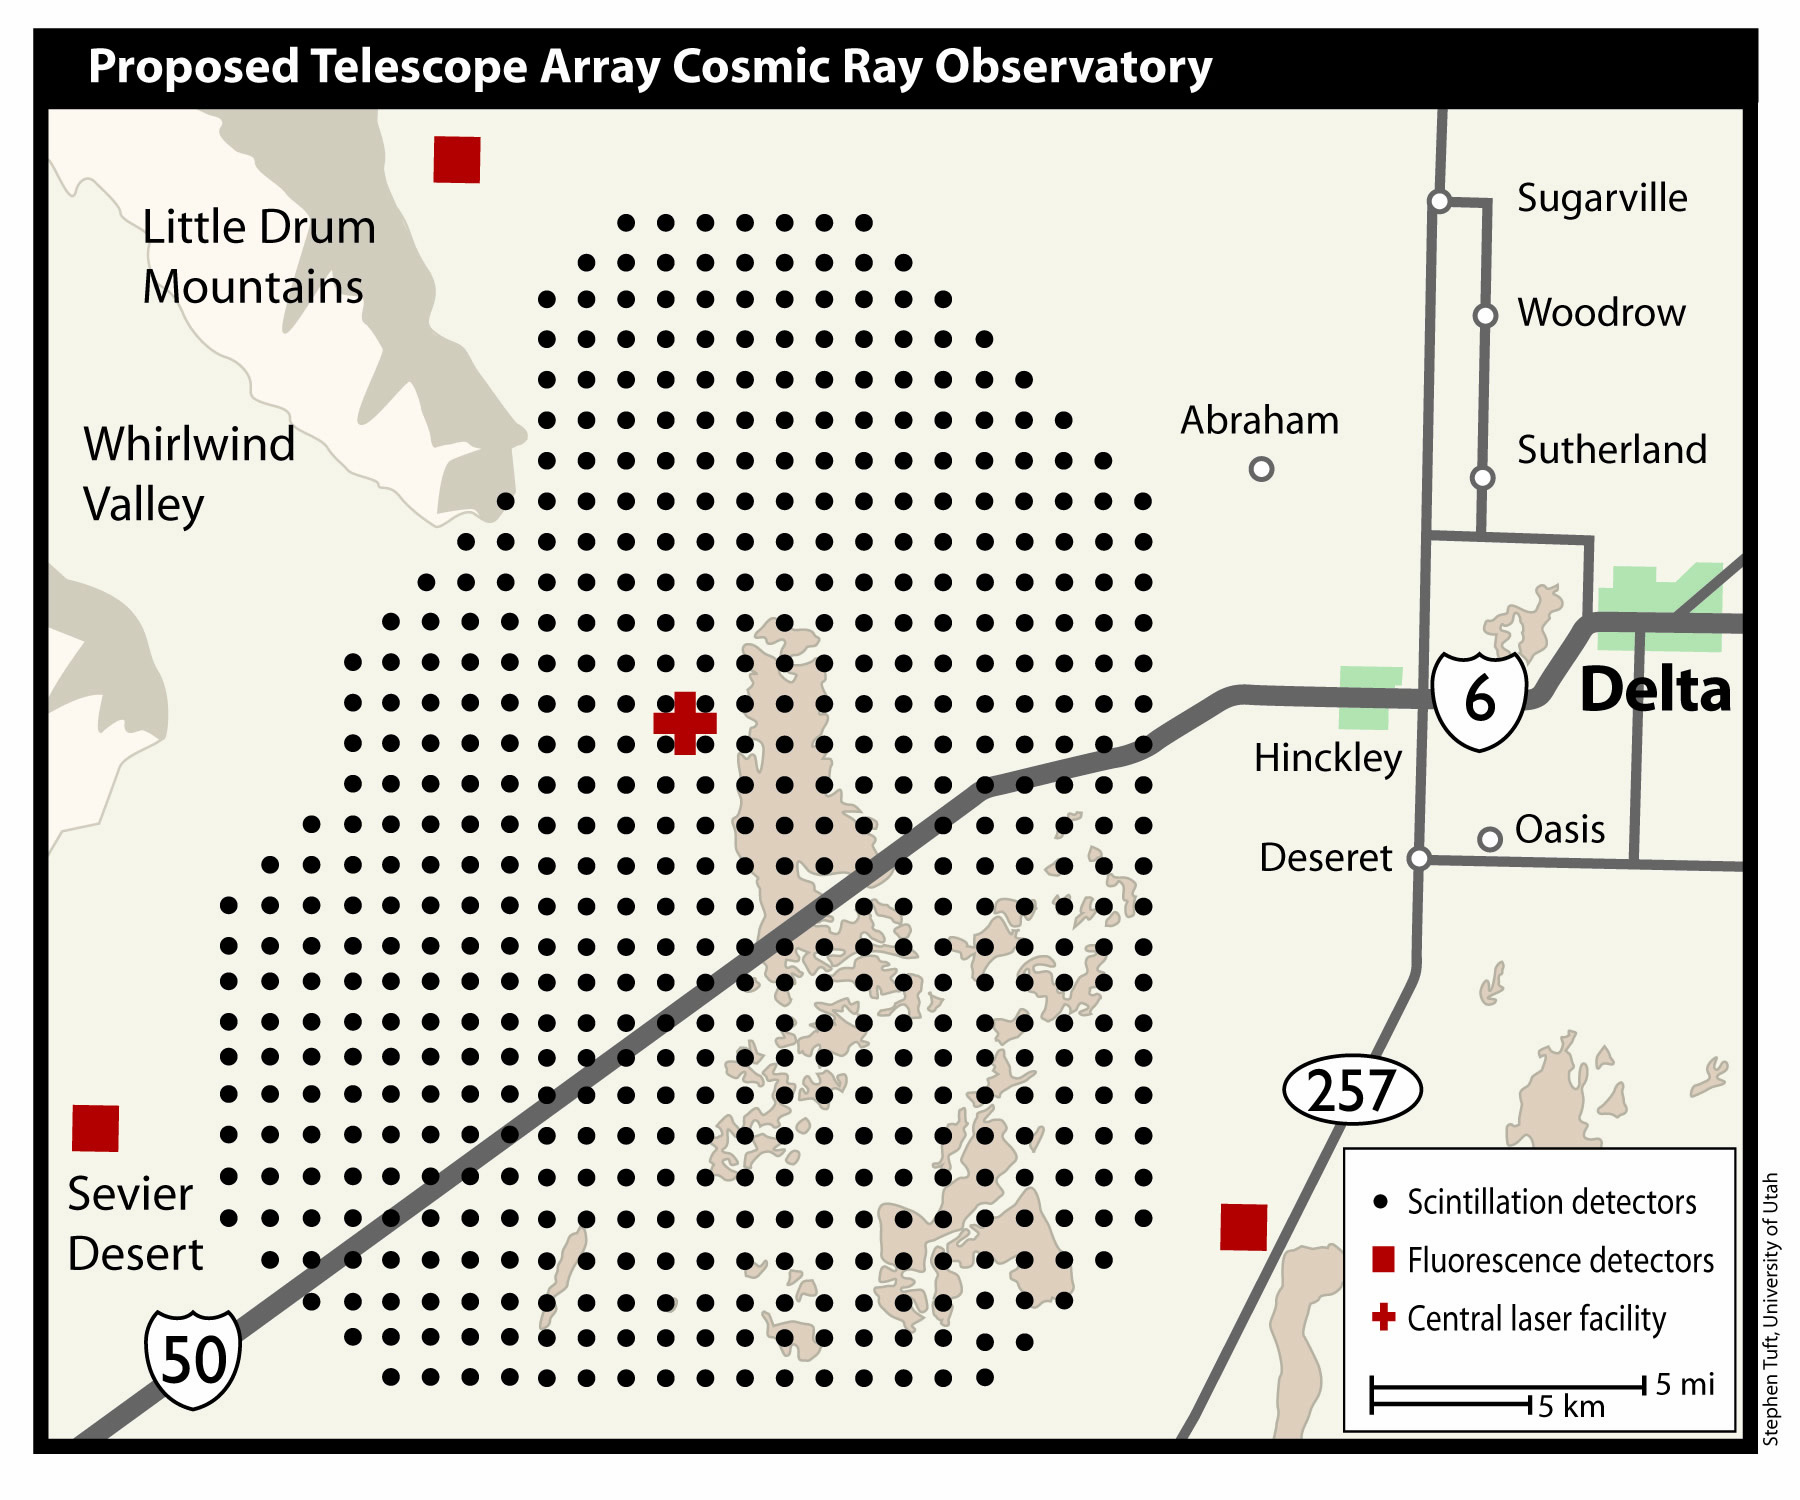 Map of the proposed Telescope Array